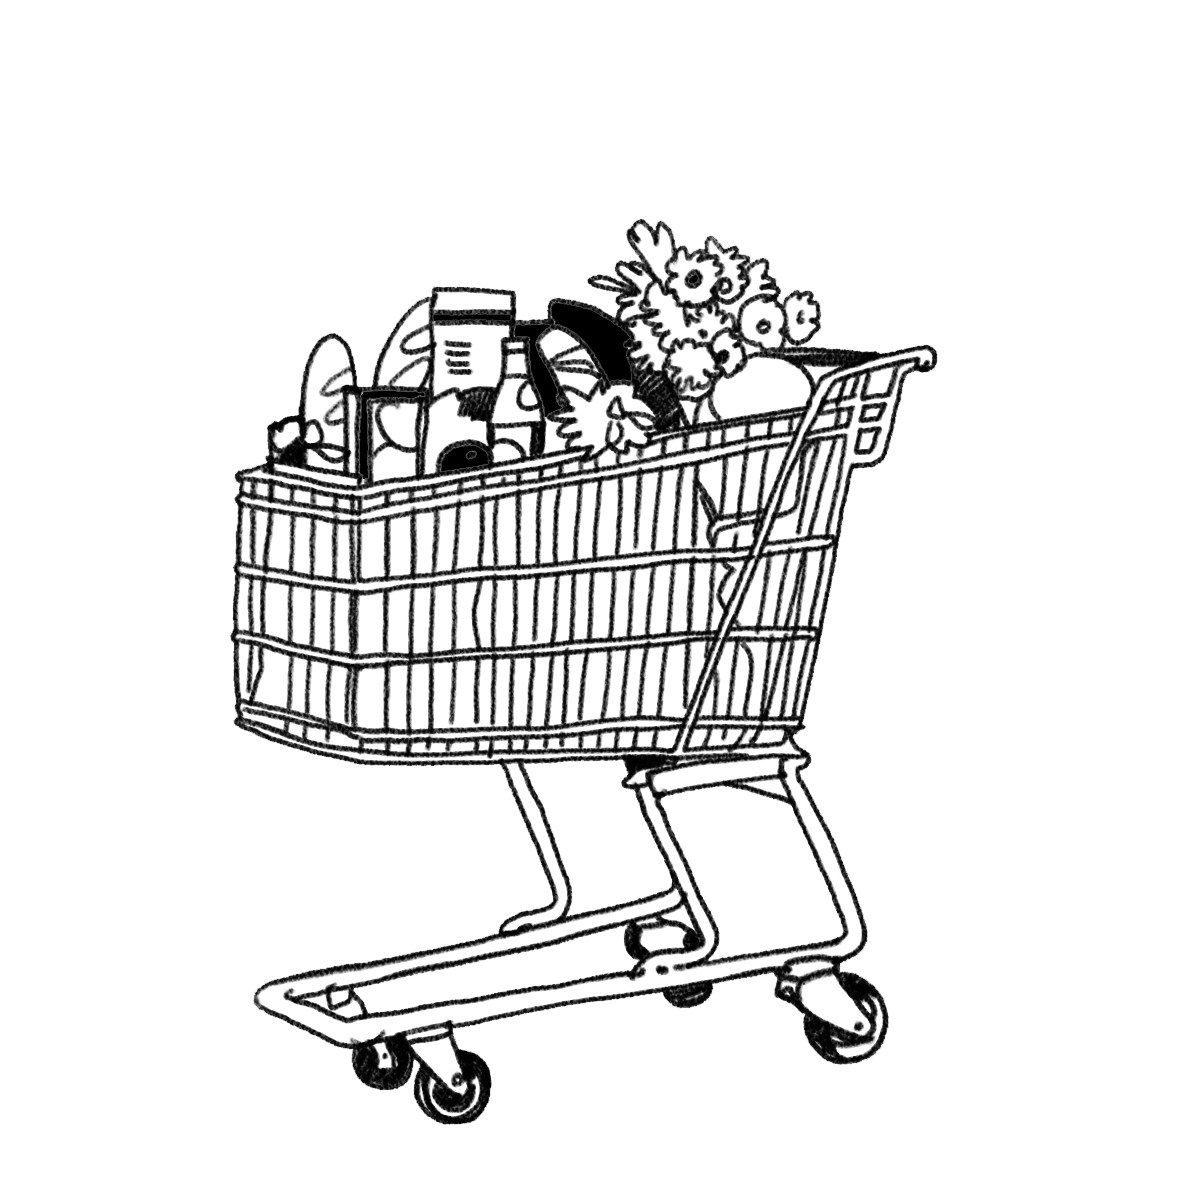 It's just an image of Decisive Shopping Cart Drawing